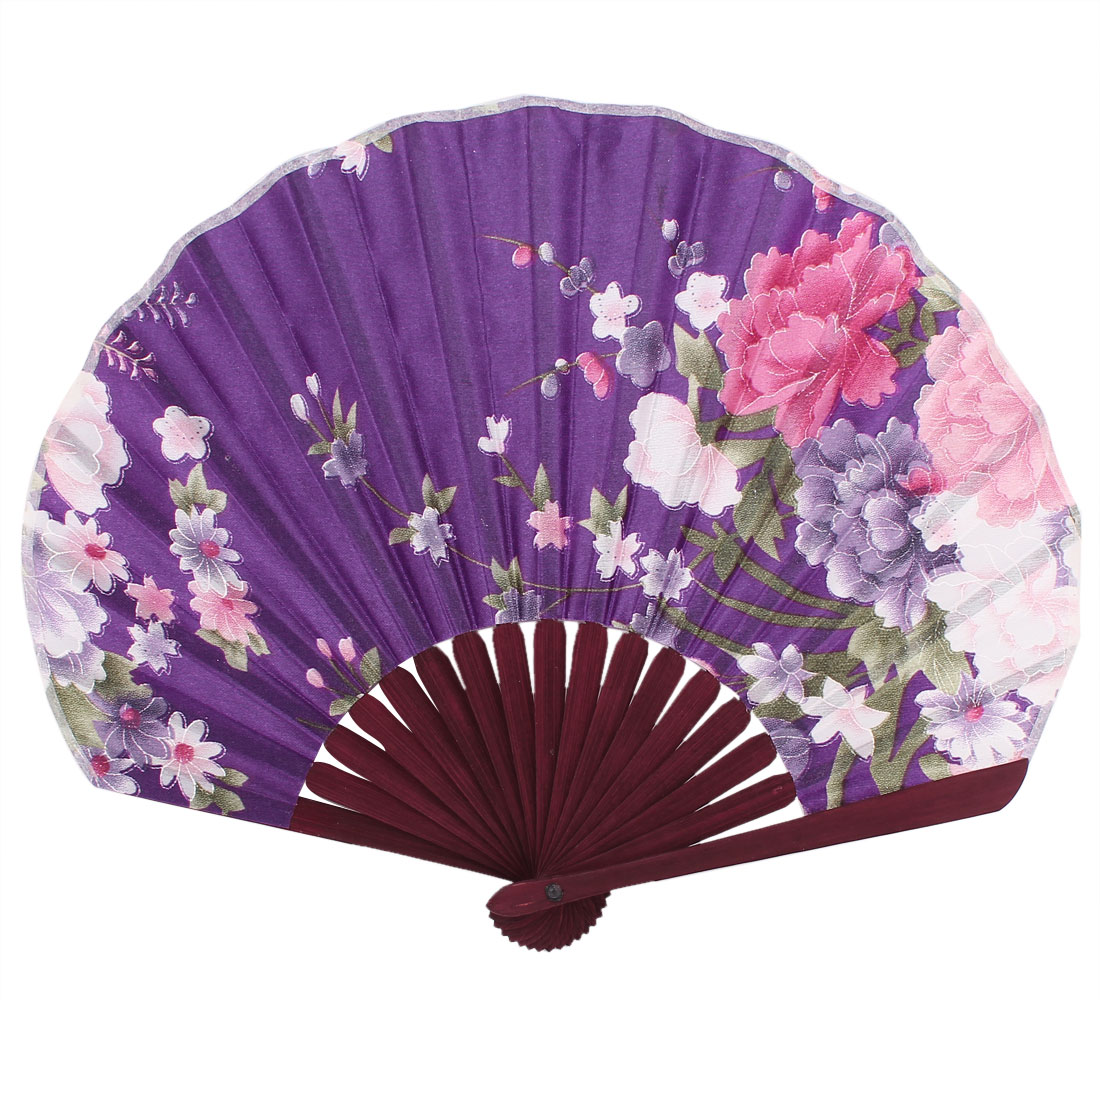 Party Decor Bamboo Frame Fabric Blooming Flower Pattern Foldable Hand Fan Purple